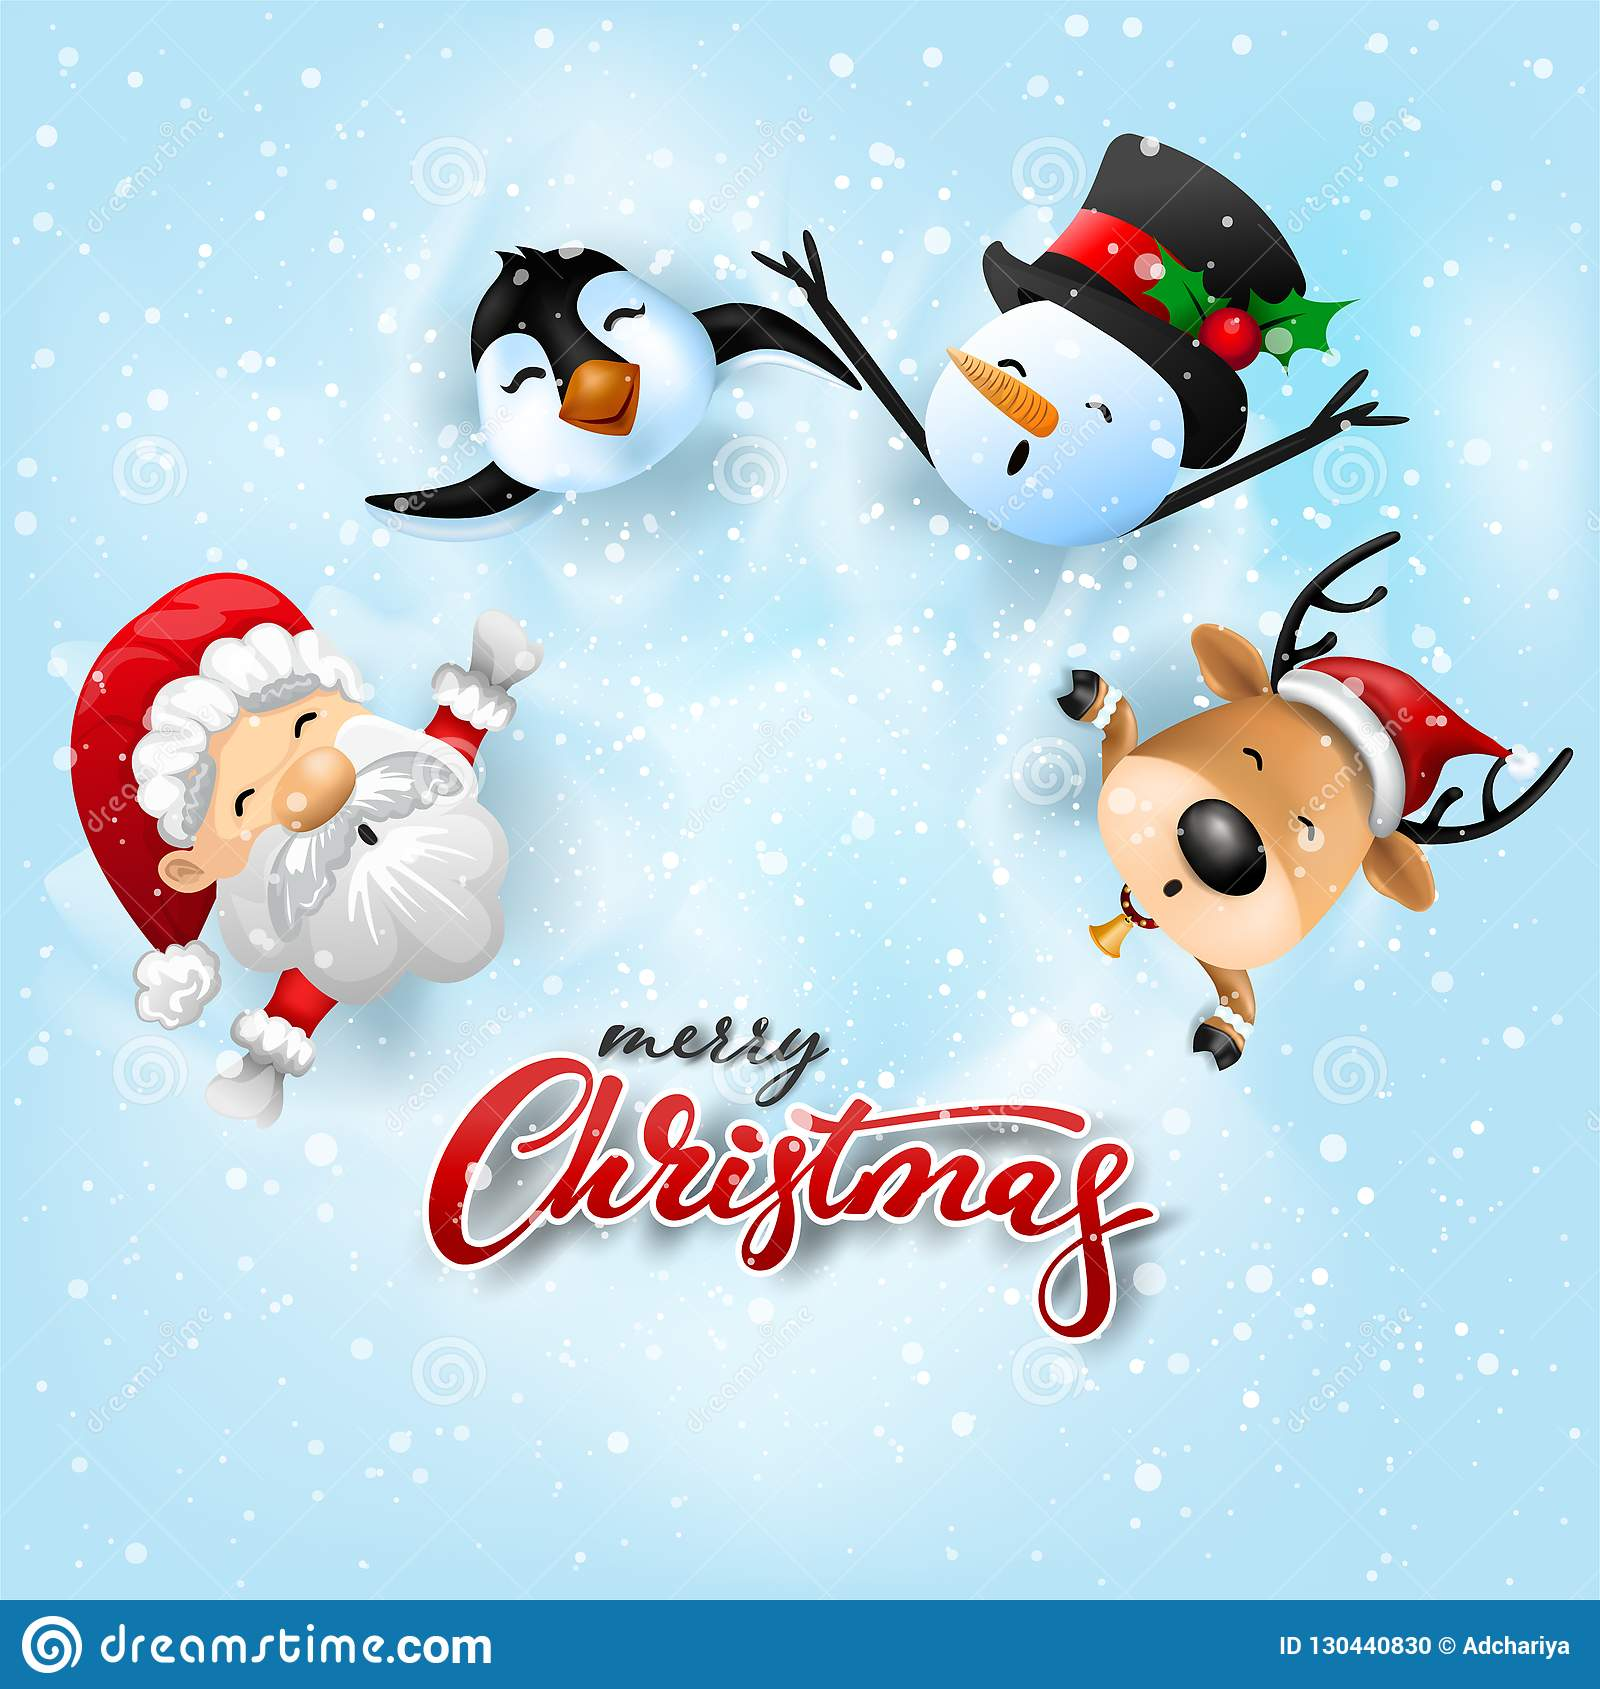 Weihnachtsgrüße Funny.Funny Christmas Greeting Card With Santa Claus Deer Snowman And